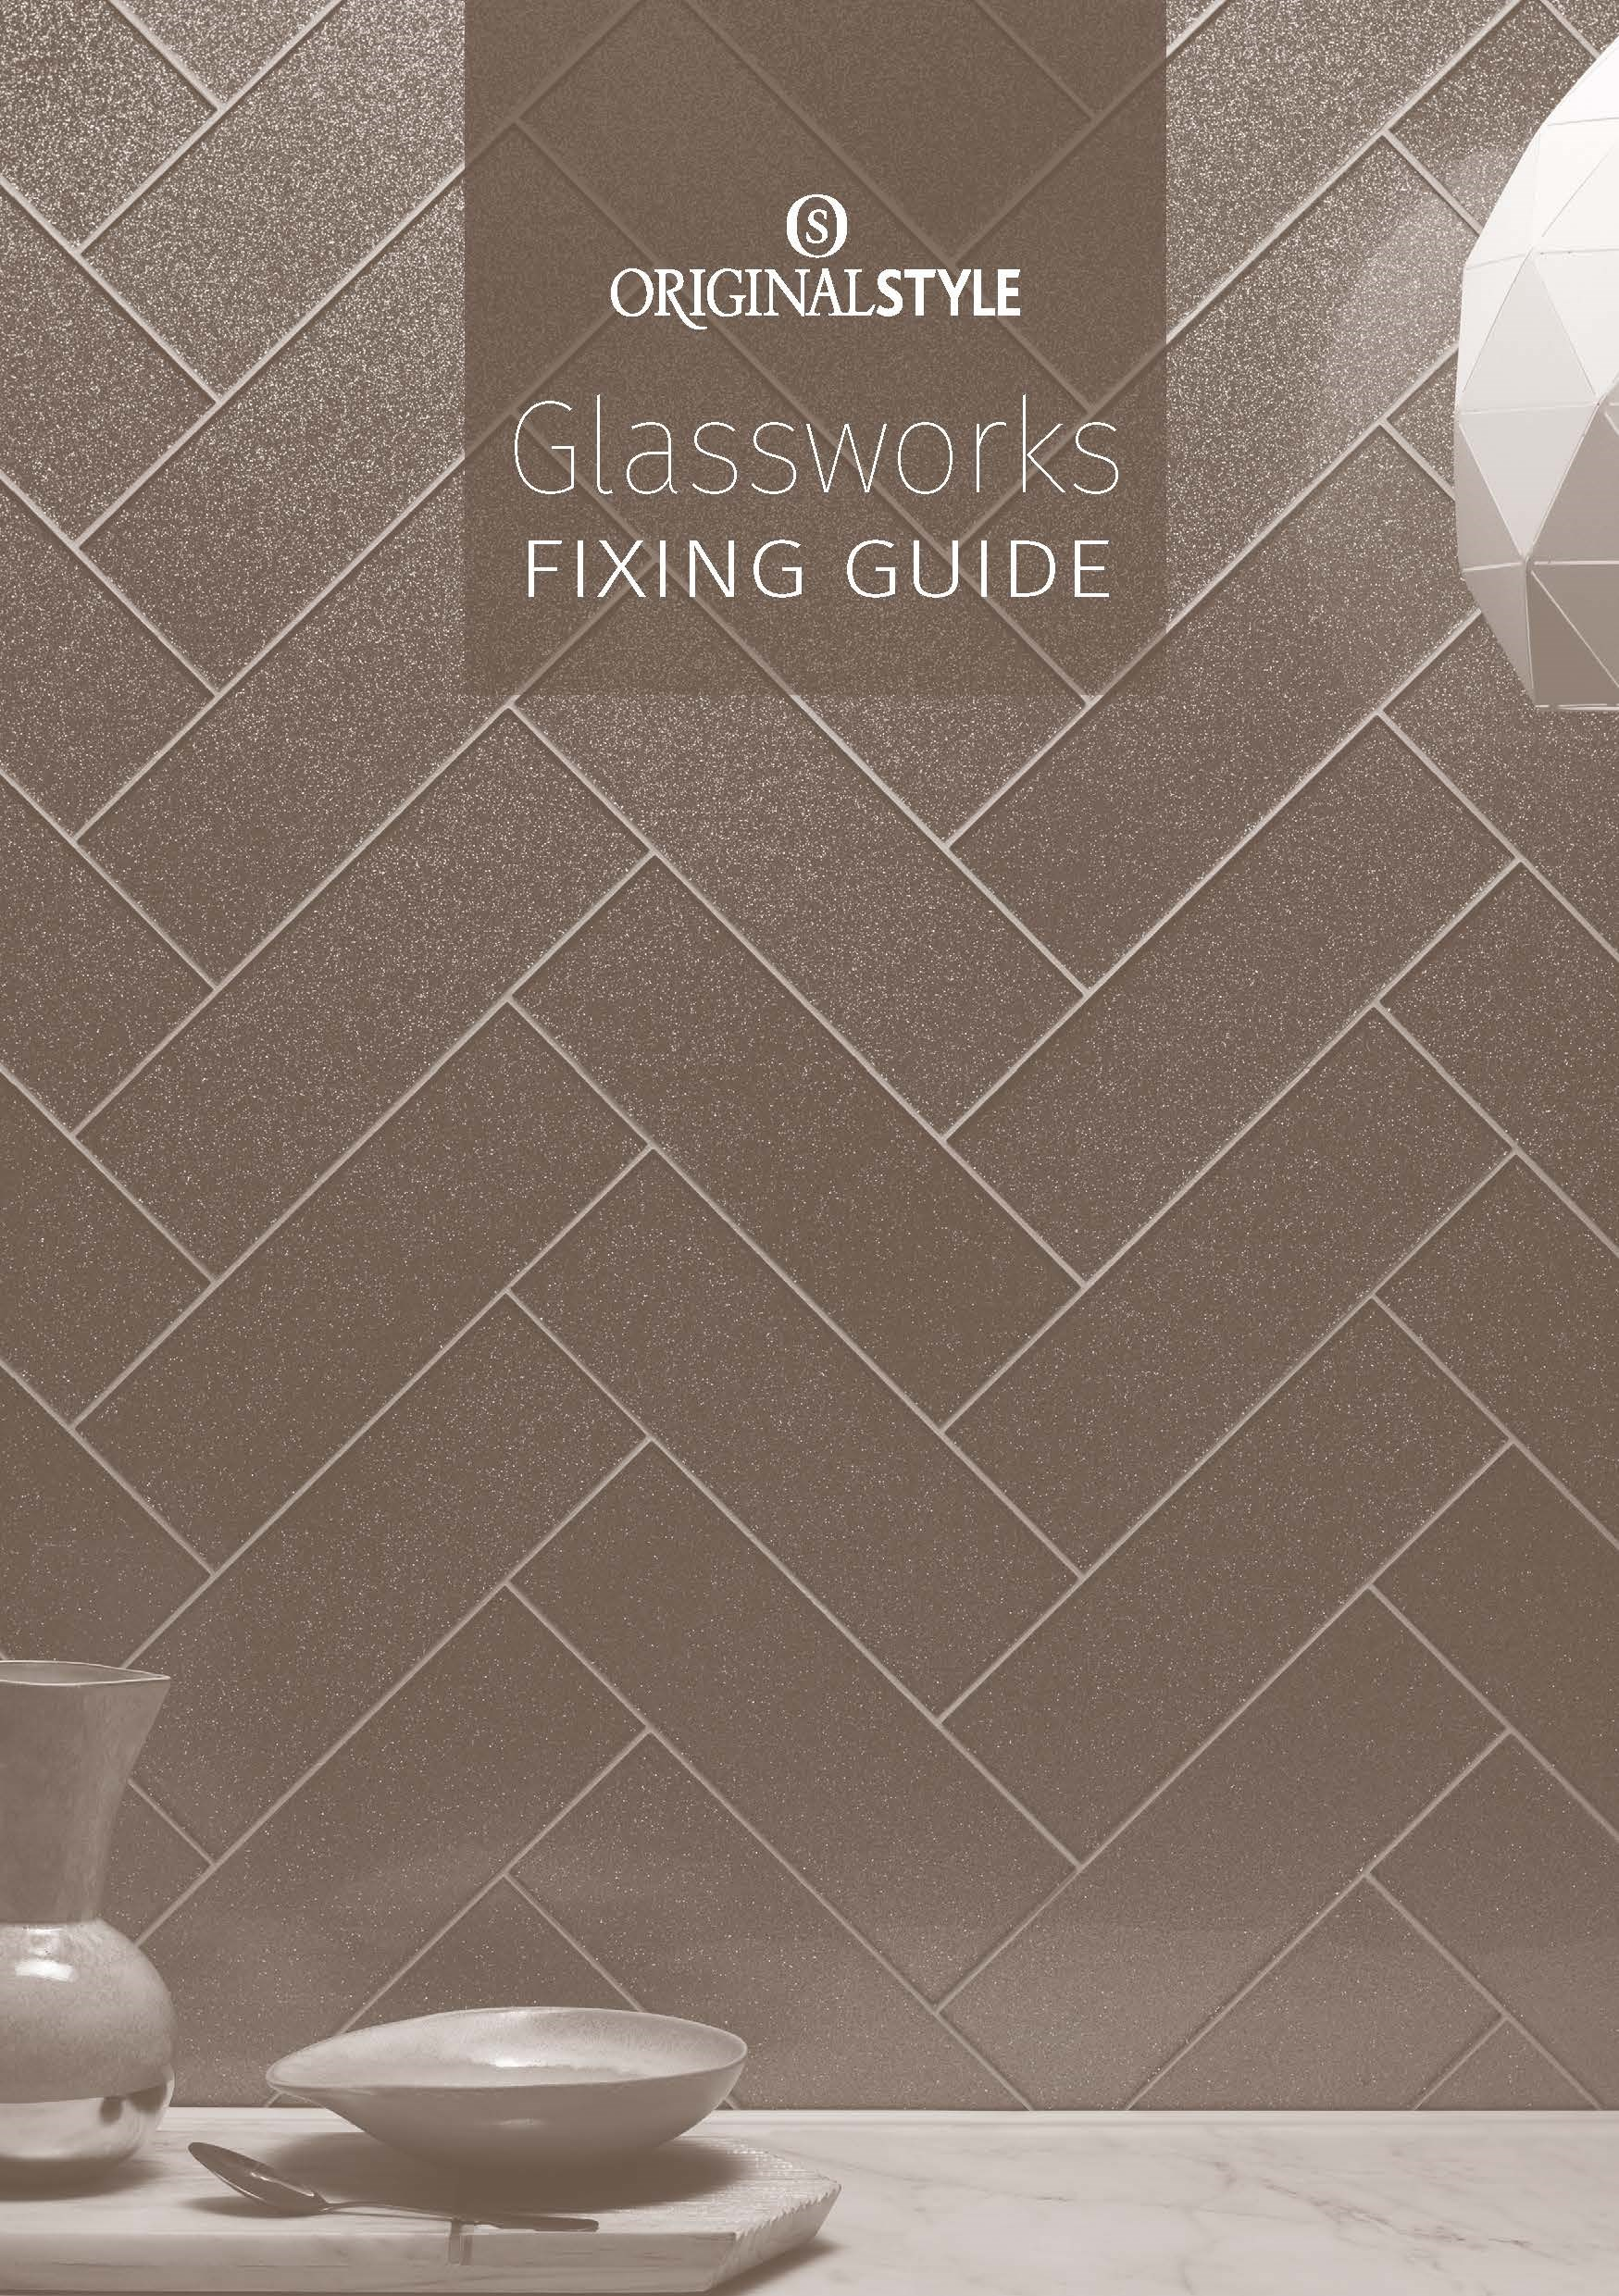 Glassworks Fixing Guide preview image